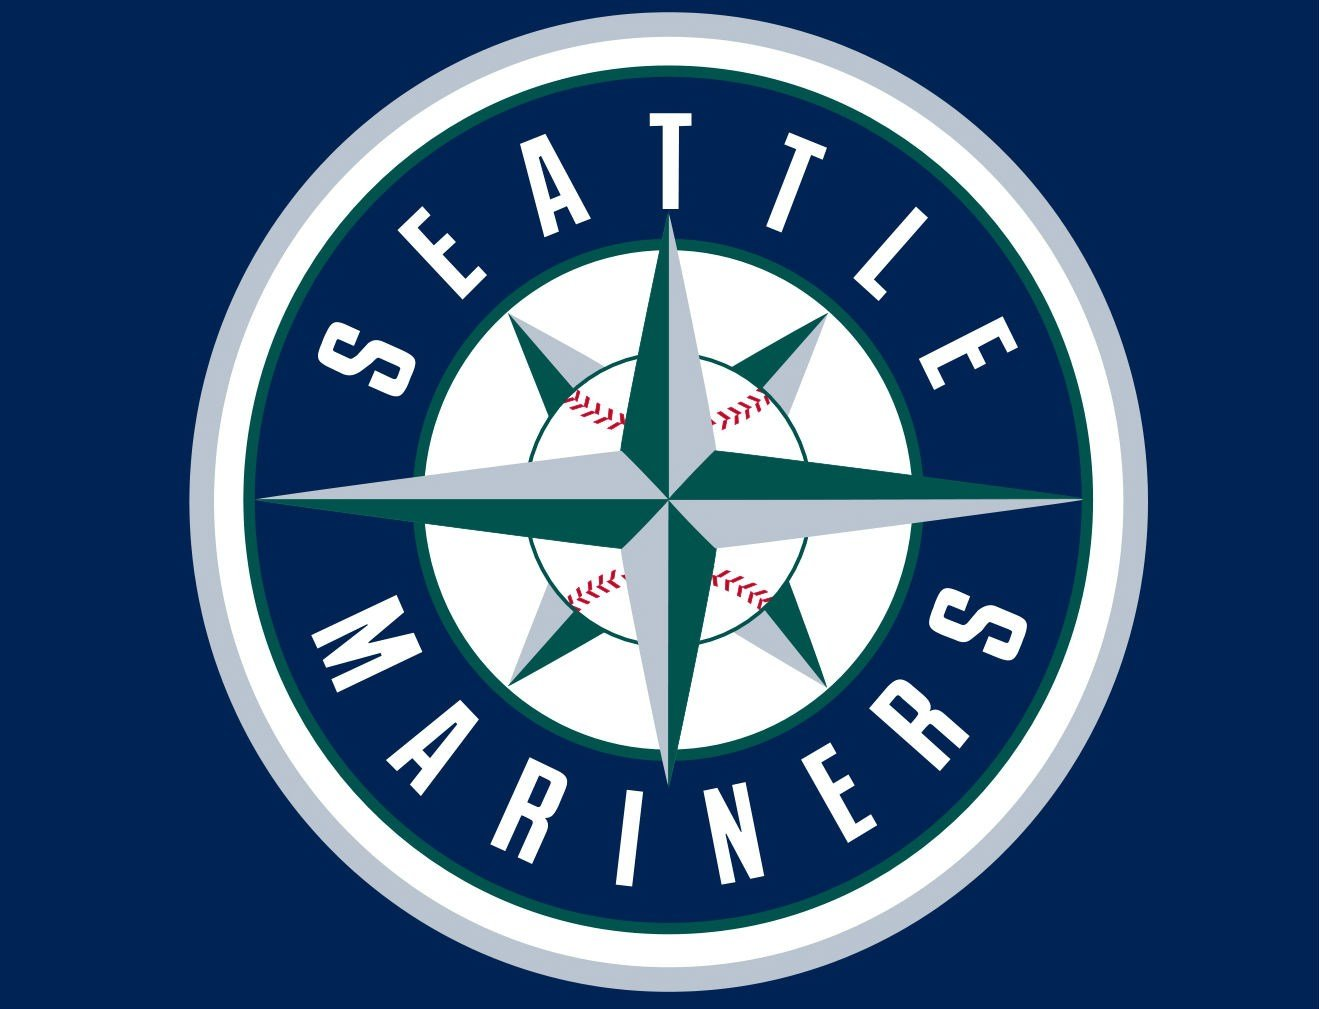 Mariners have now won eight of their last nine games